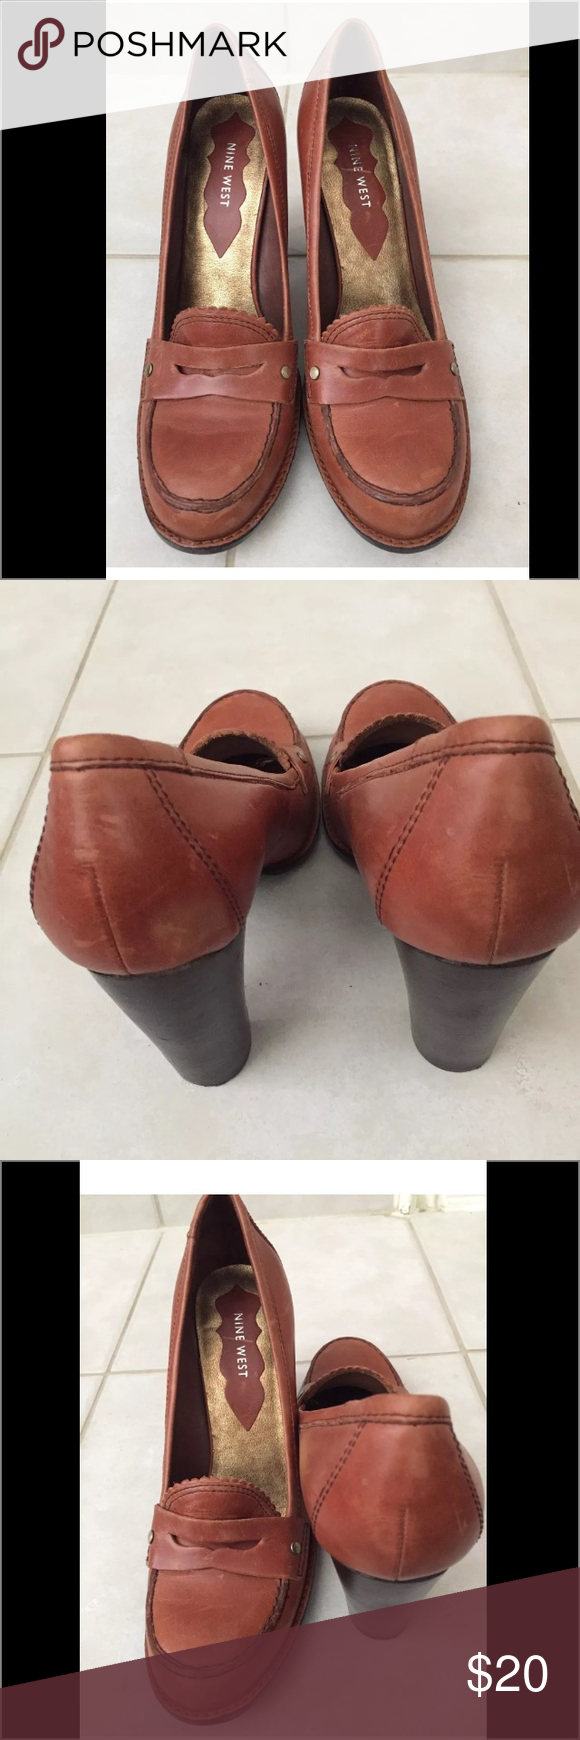 Nine West Brown Leather Heeled 8 1/2 NINE WEST 4 INCH HEELS, WOMEN SIZE 8 .5  Brown LEATHER UPPERS, QUITE CLEAN INSIDE AND OUT,   LIGHT WEAR ON SOLES  SCUFFS ON THE Leather from wearing.  Excellent condition worn few times Nine West Shoes Heels